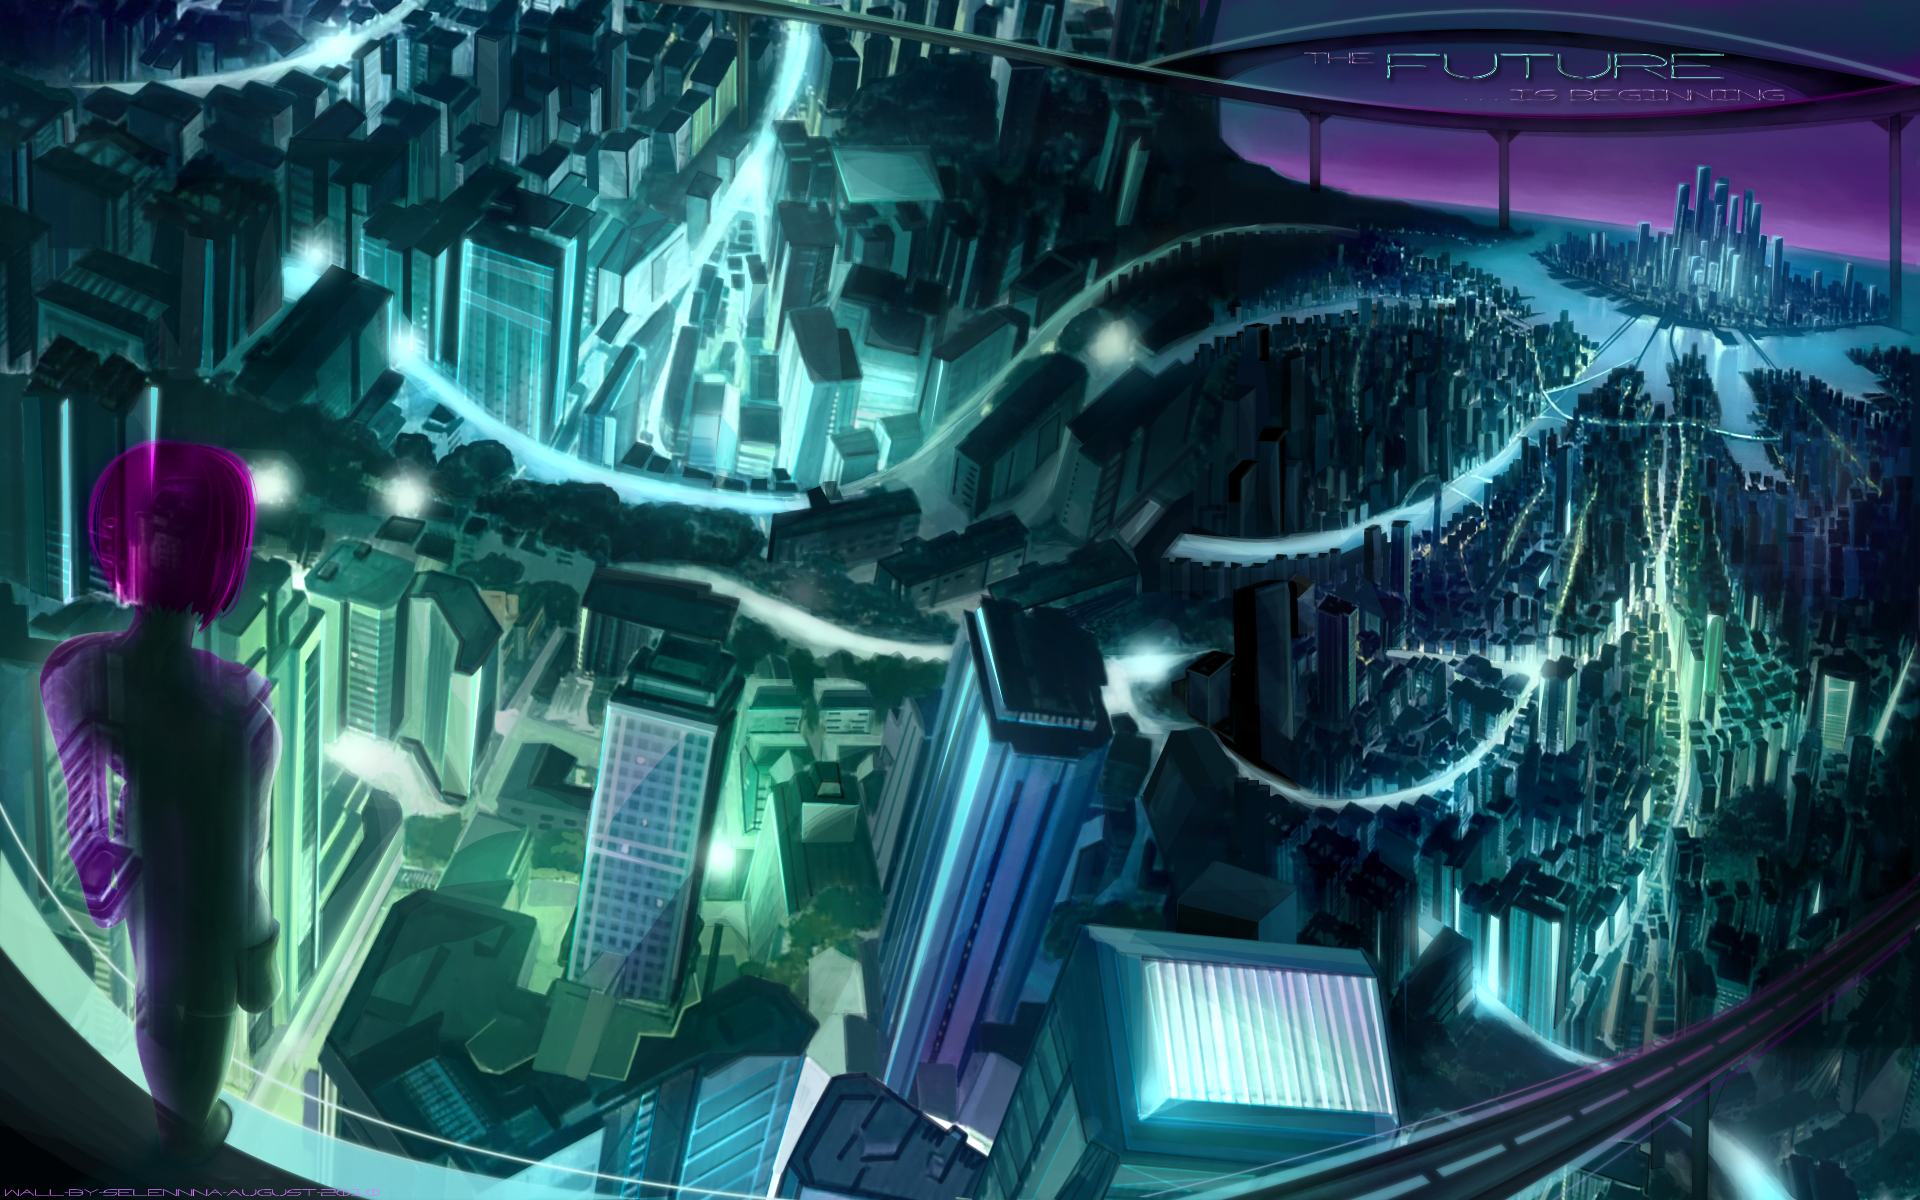 Masamune Shirow Ghost In The Shell Motoko Kusanagi Anime Wallpaper The Ghost In The Shell 1920x1200 Download Hd Wallpaper Wallpapertip